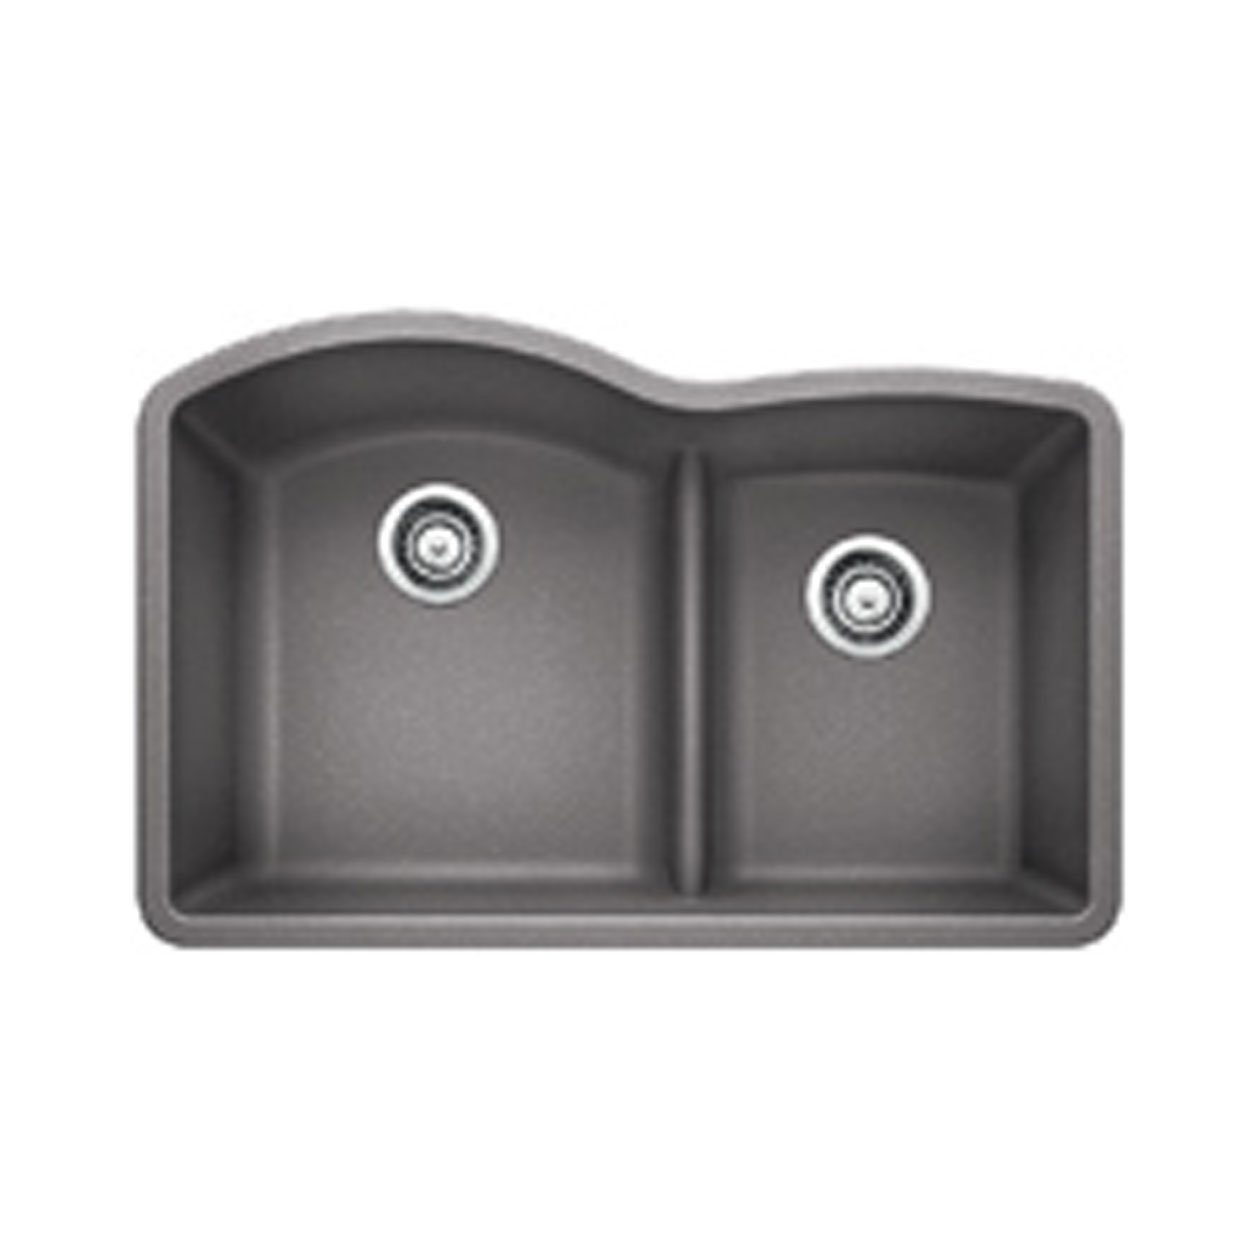 Blanco FBA 441592 Diamond 1.75 Low Divide Under Mount Double Bowl Kitchen Sink, Large, Metallic Gray